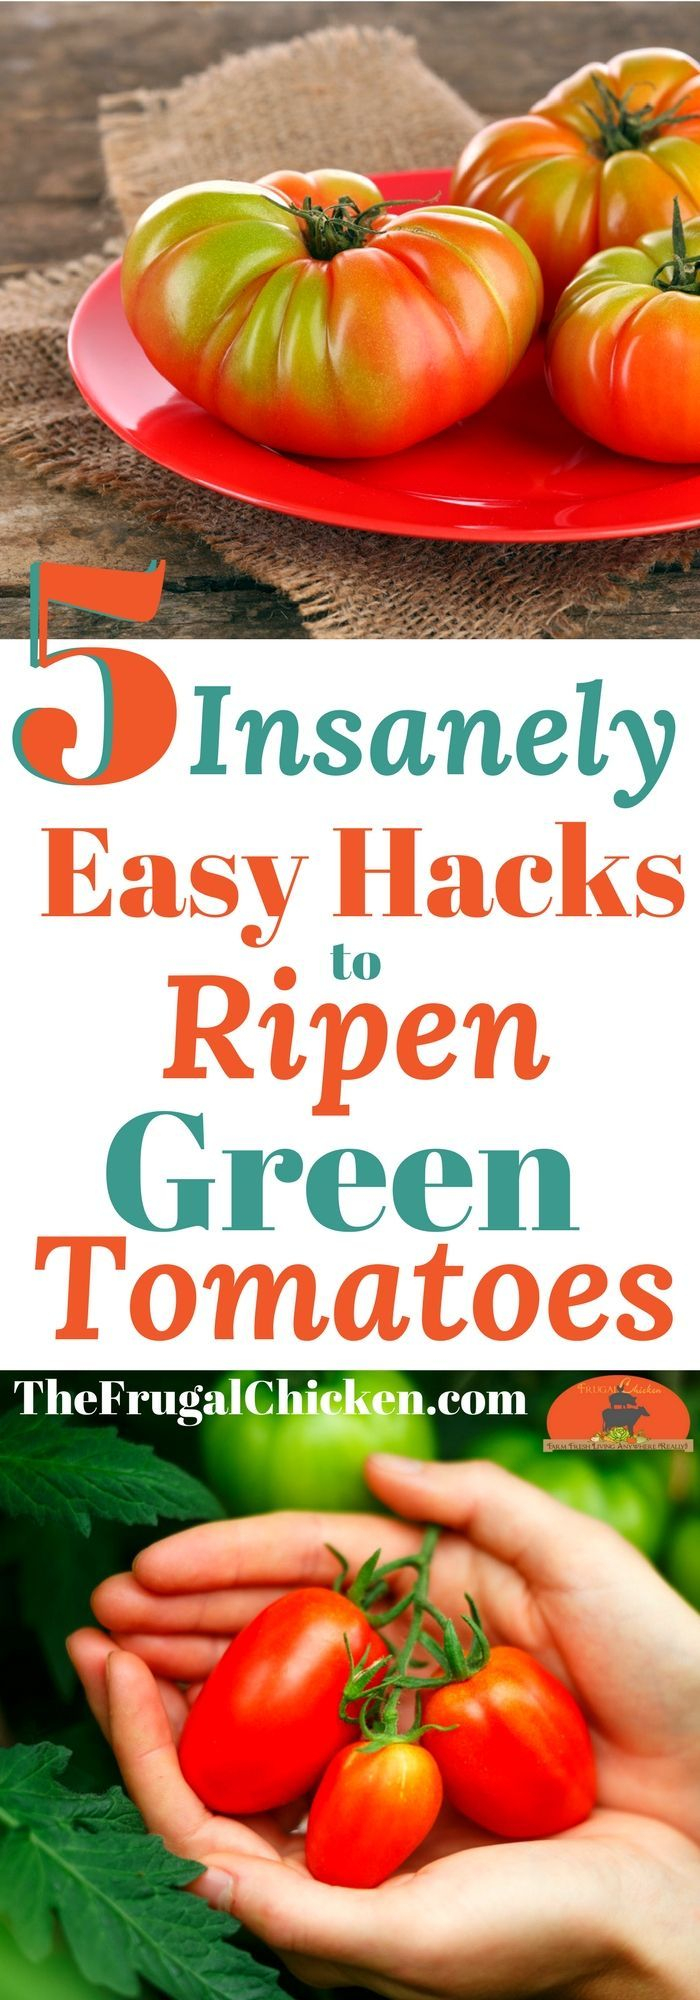 Looking at buckets of green tomatoes (but really yearn for fresh homemade tomato sauce)? Here's 5 insanely easy hacks to get those suckers to ripen!